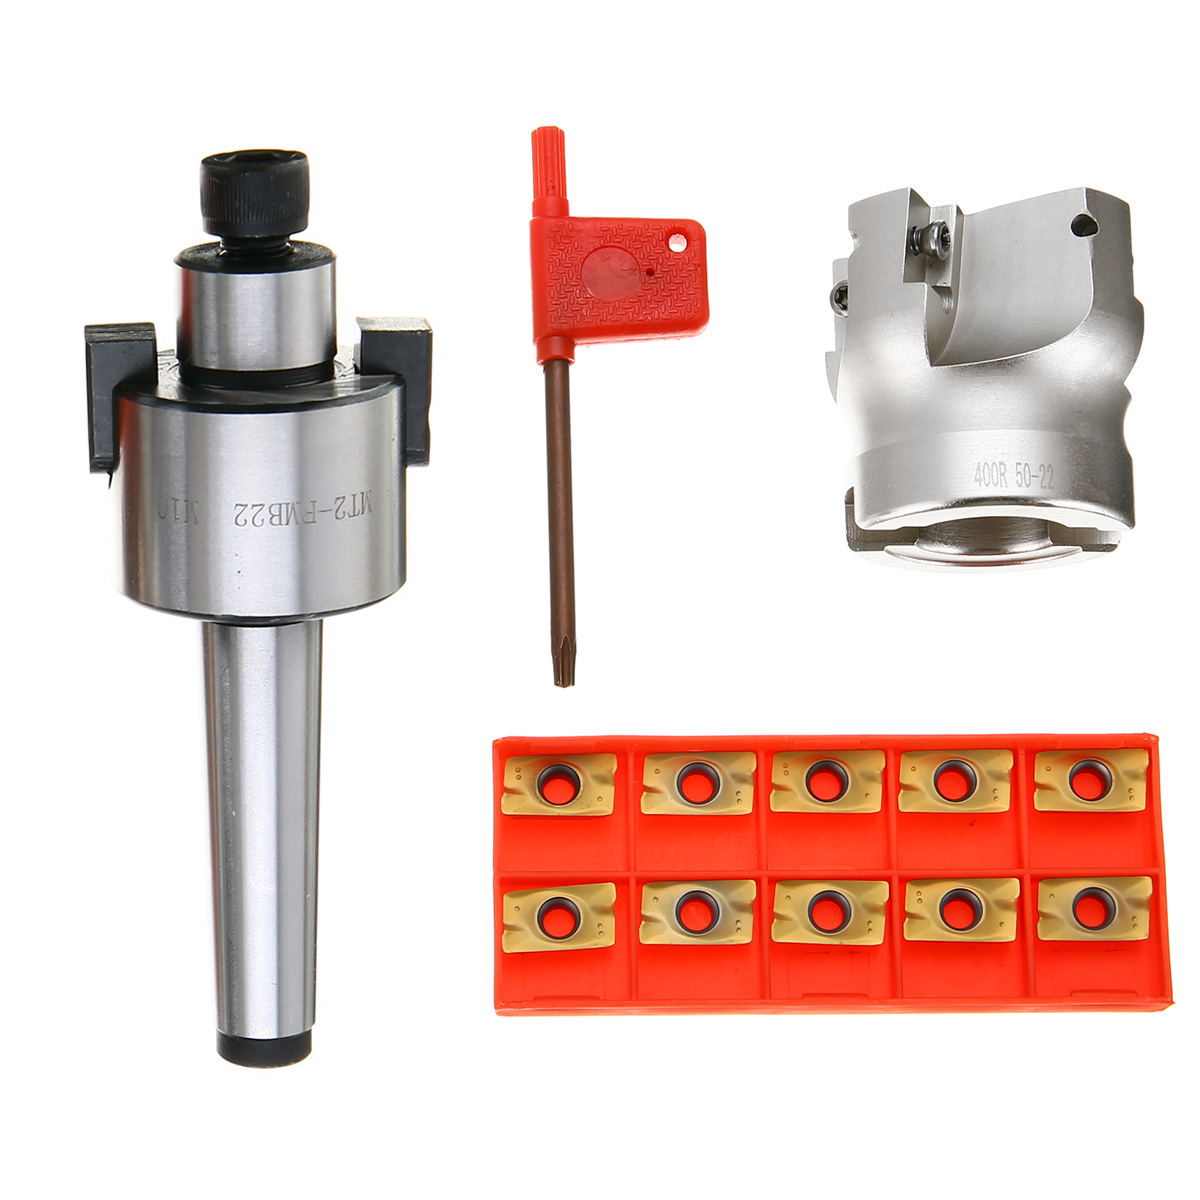 High Quality MT2 400R Face End Mill Cutter 50mm + 10pcs APMT1604 Carbide Inserts with Wrench For Cutting Tool free shiping1pcs aju c10 10 100 10pcs ccmt060204 dia 10mm insertable bore drilling end mill cutting tools arbor for ccmt060204